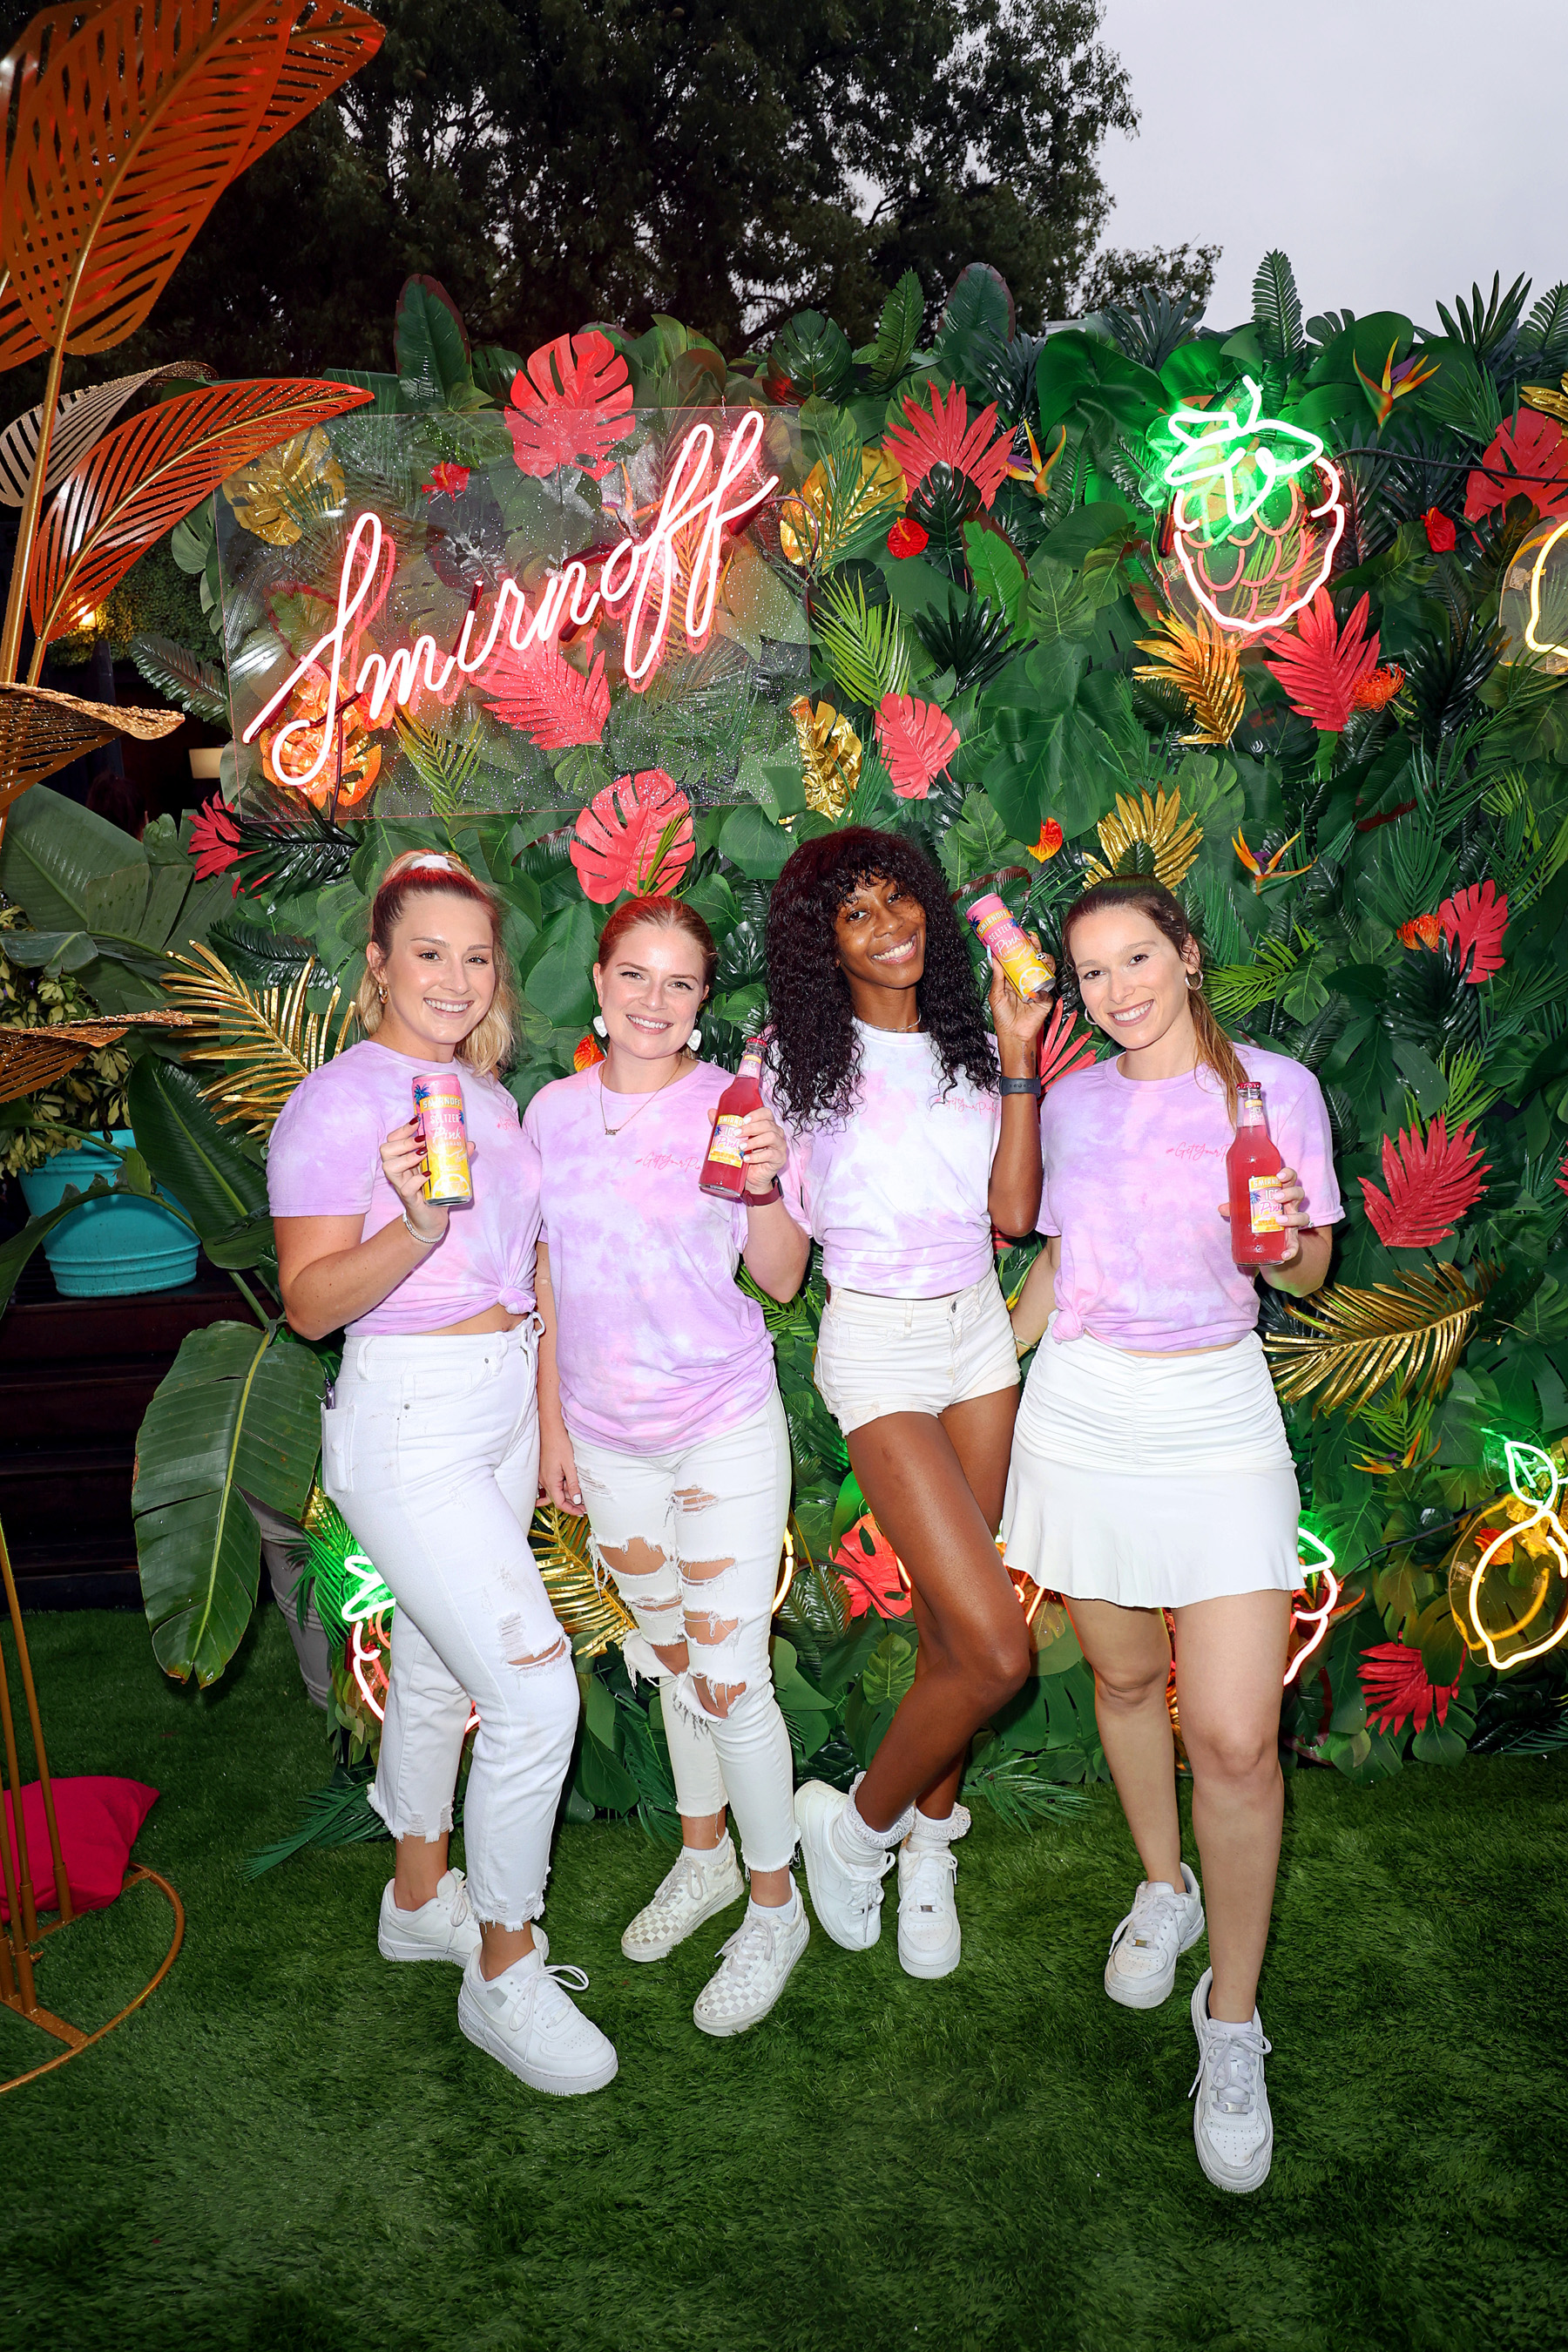 Smirnoff Paints Miami Pink with the Help of Music Superstar Ty Dolla $ign, a Larger-Than-Life Pink Flamingo and Pop-Up Neon Lemonade Stand Serving Its Newest Pink Lemonade Offering